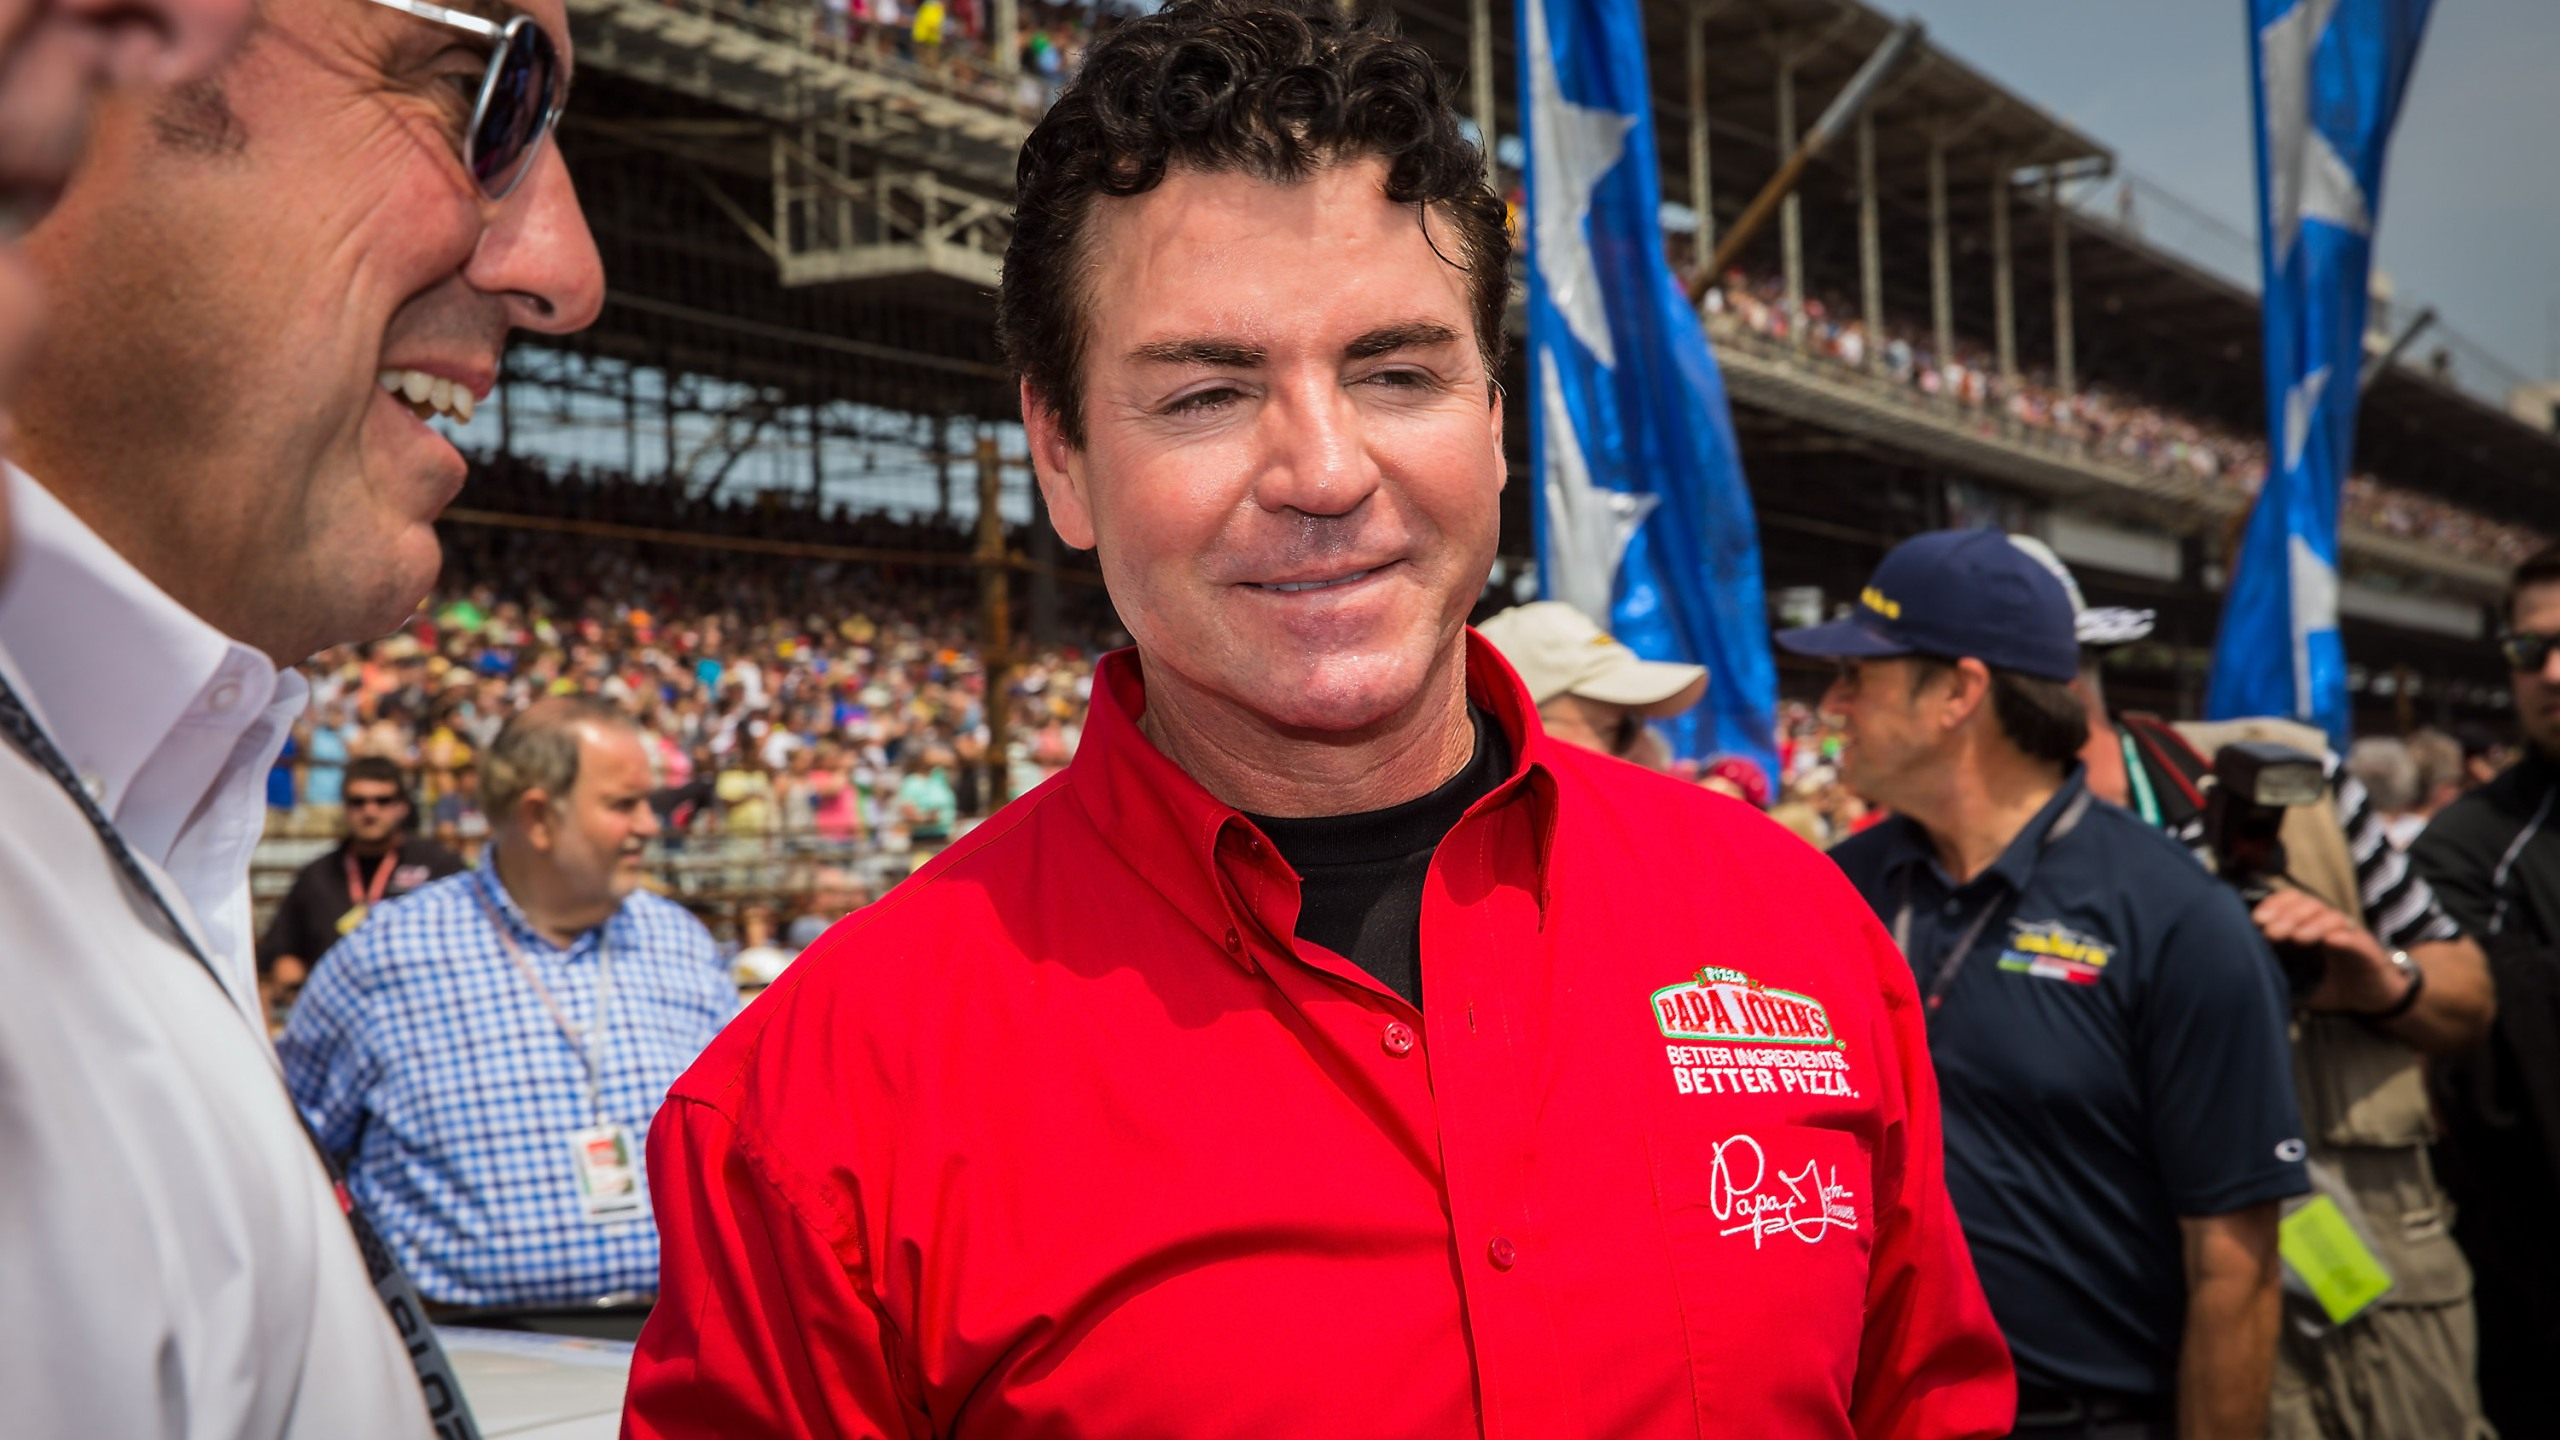 Papa John's founder and CEO John Schnatter attends the Indy 500 on May 23, 2015, in Indianapolis, Indiana. (Credit: Michael Hickey / Getty Images)